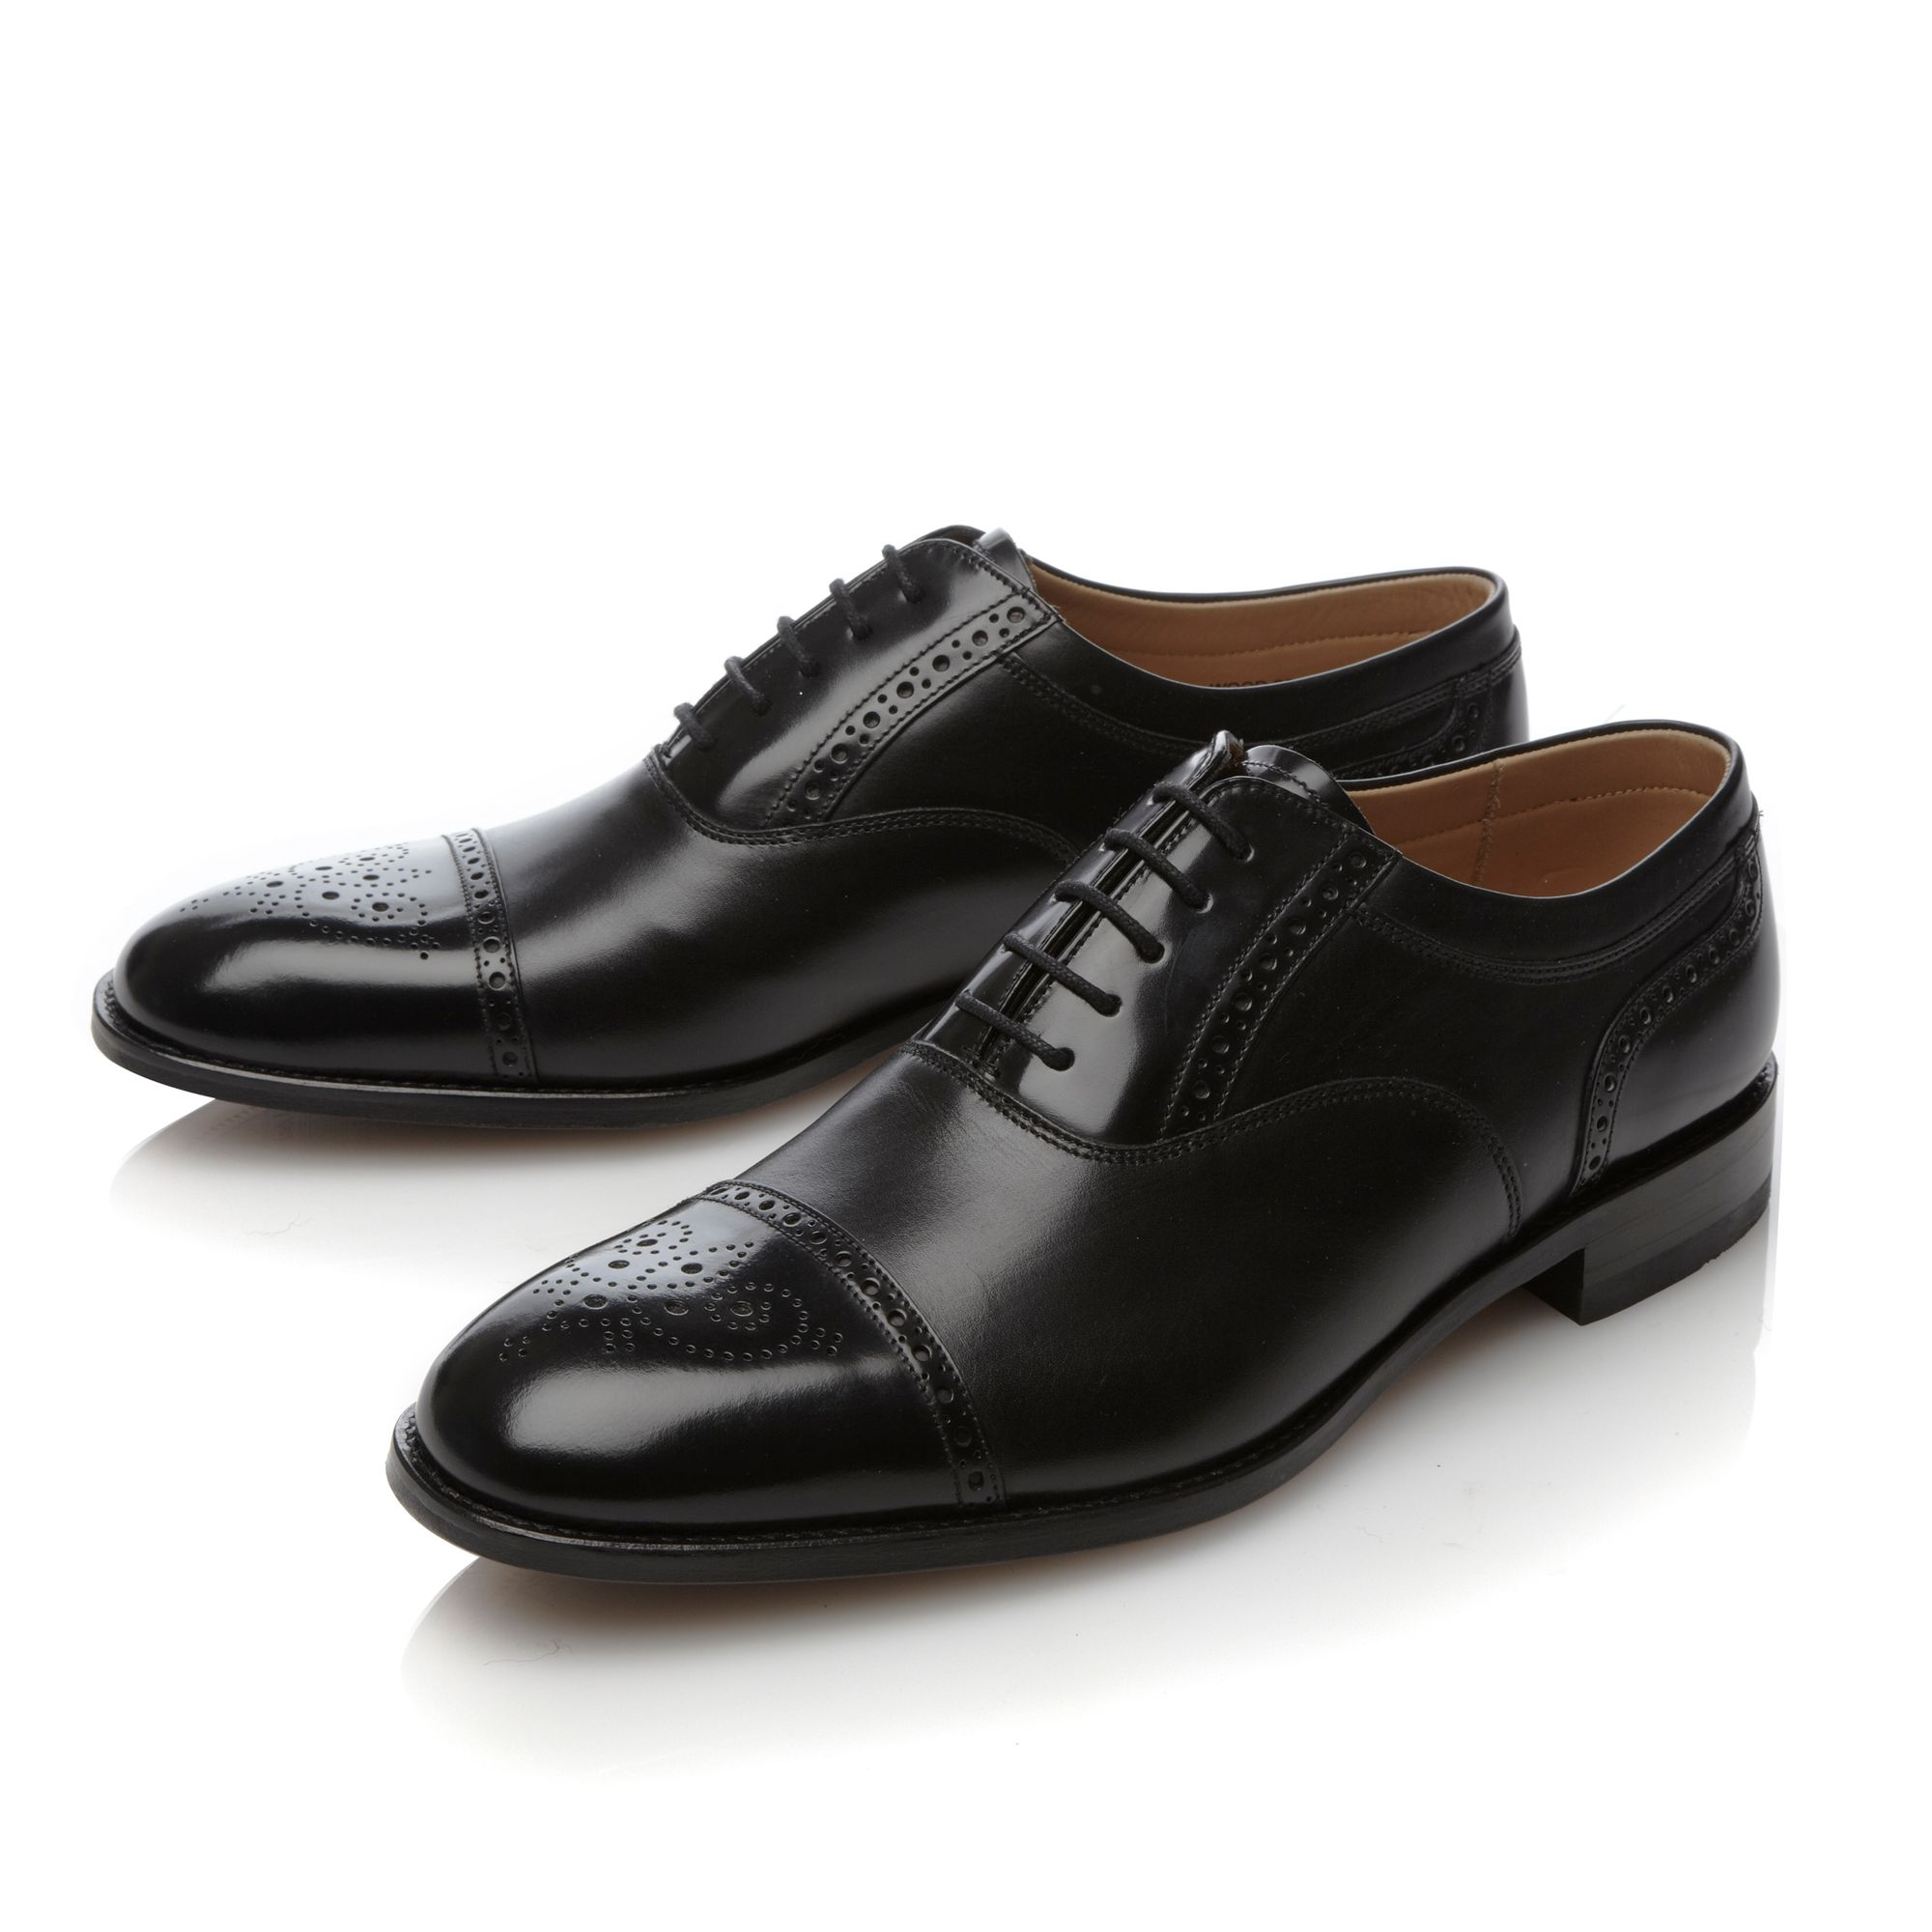 Woodstock formal shoes